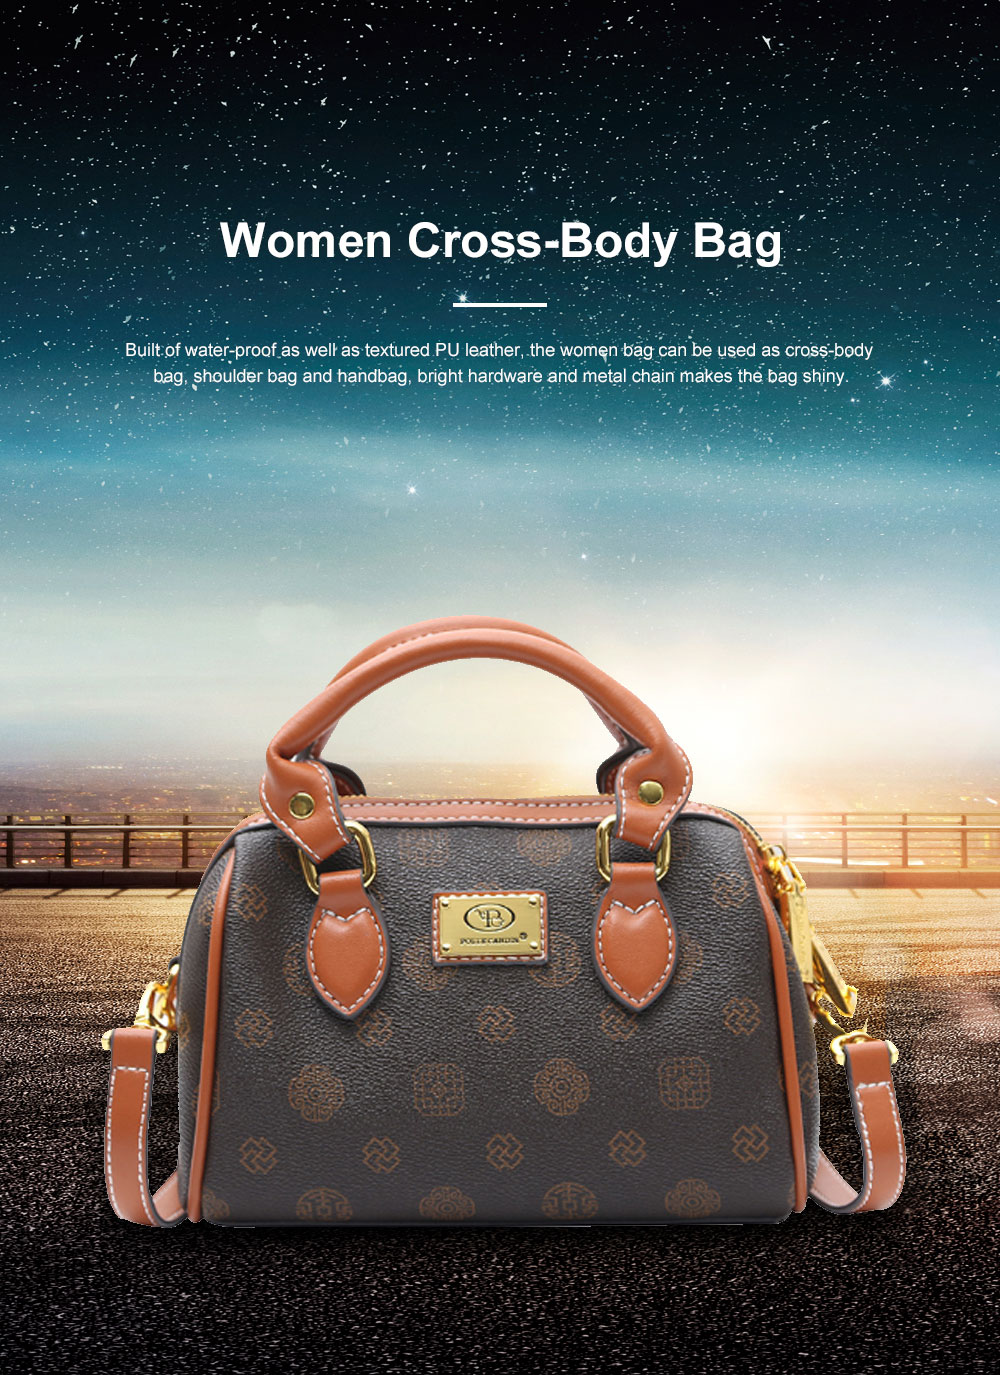 Women Cross-Body Bag with Super Comfortable Handles Textured PU Leather Shoulder Bag 0